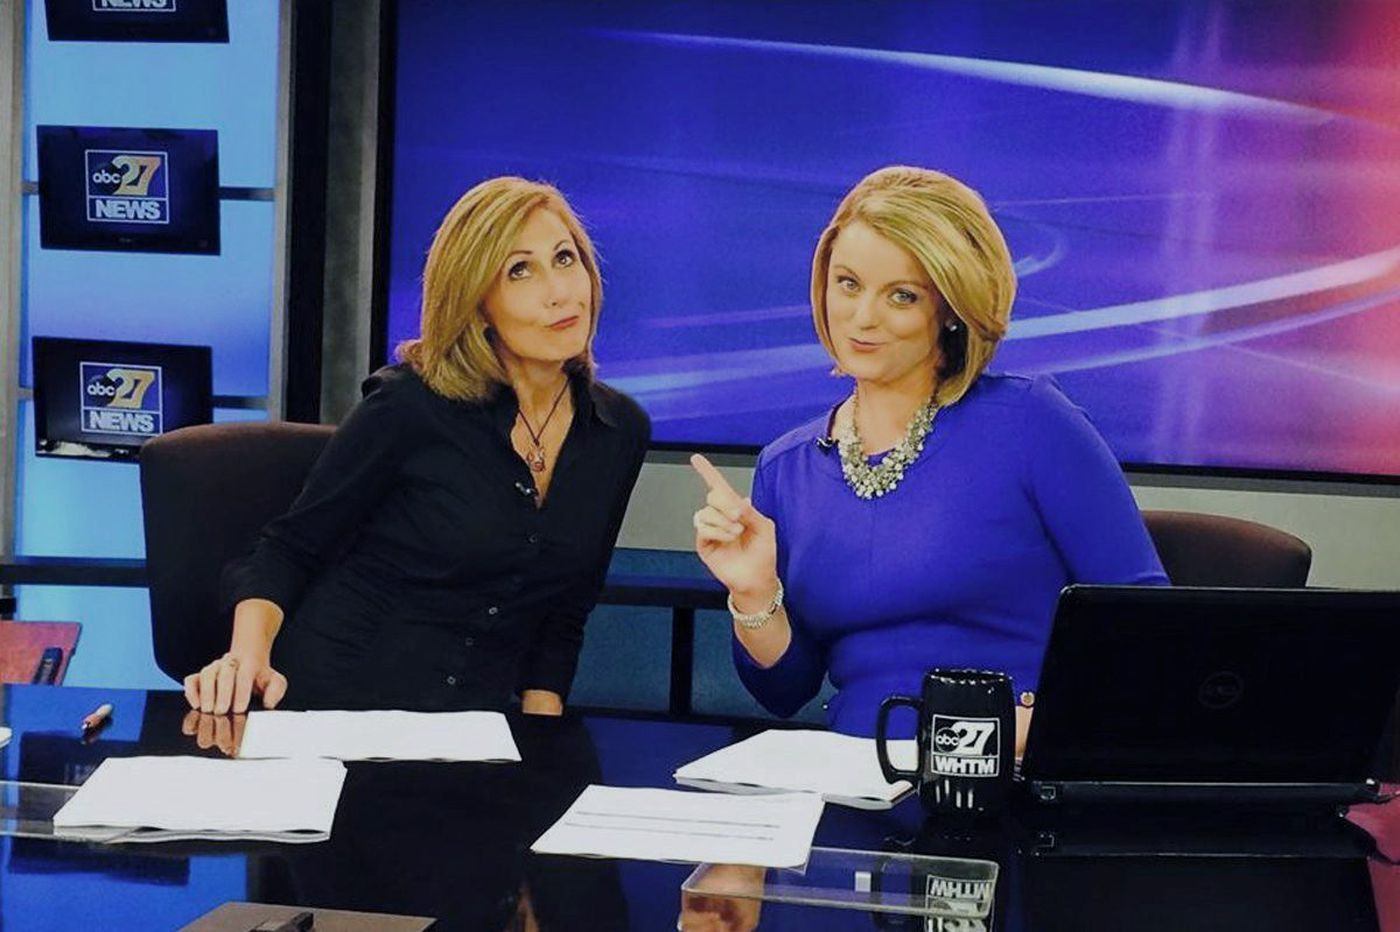 Ex-Action News anchor Flora Posteraro claims harassment, retaliation in ouster from abc27